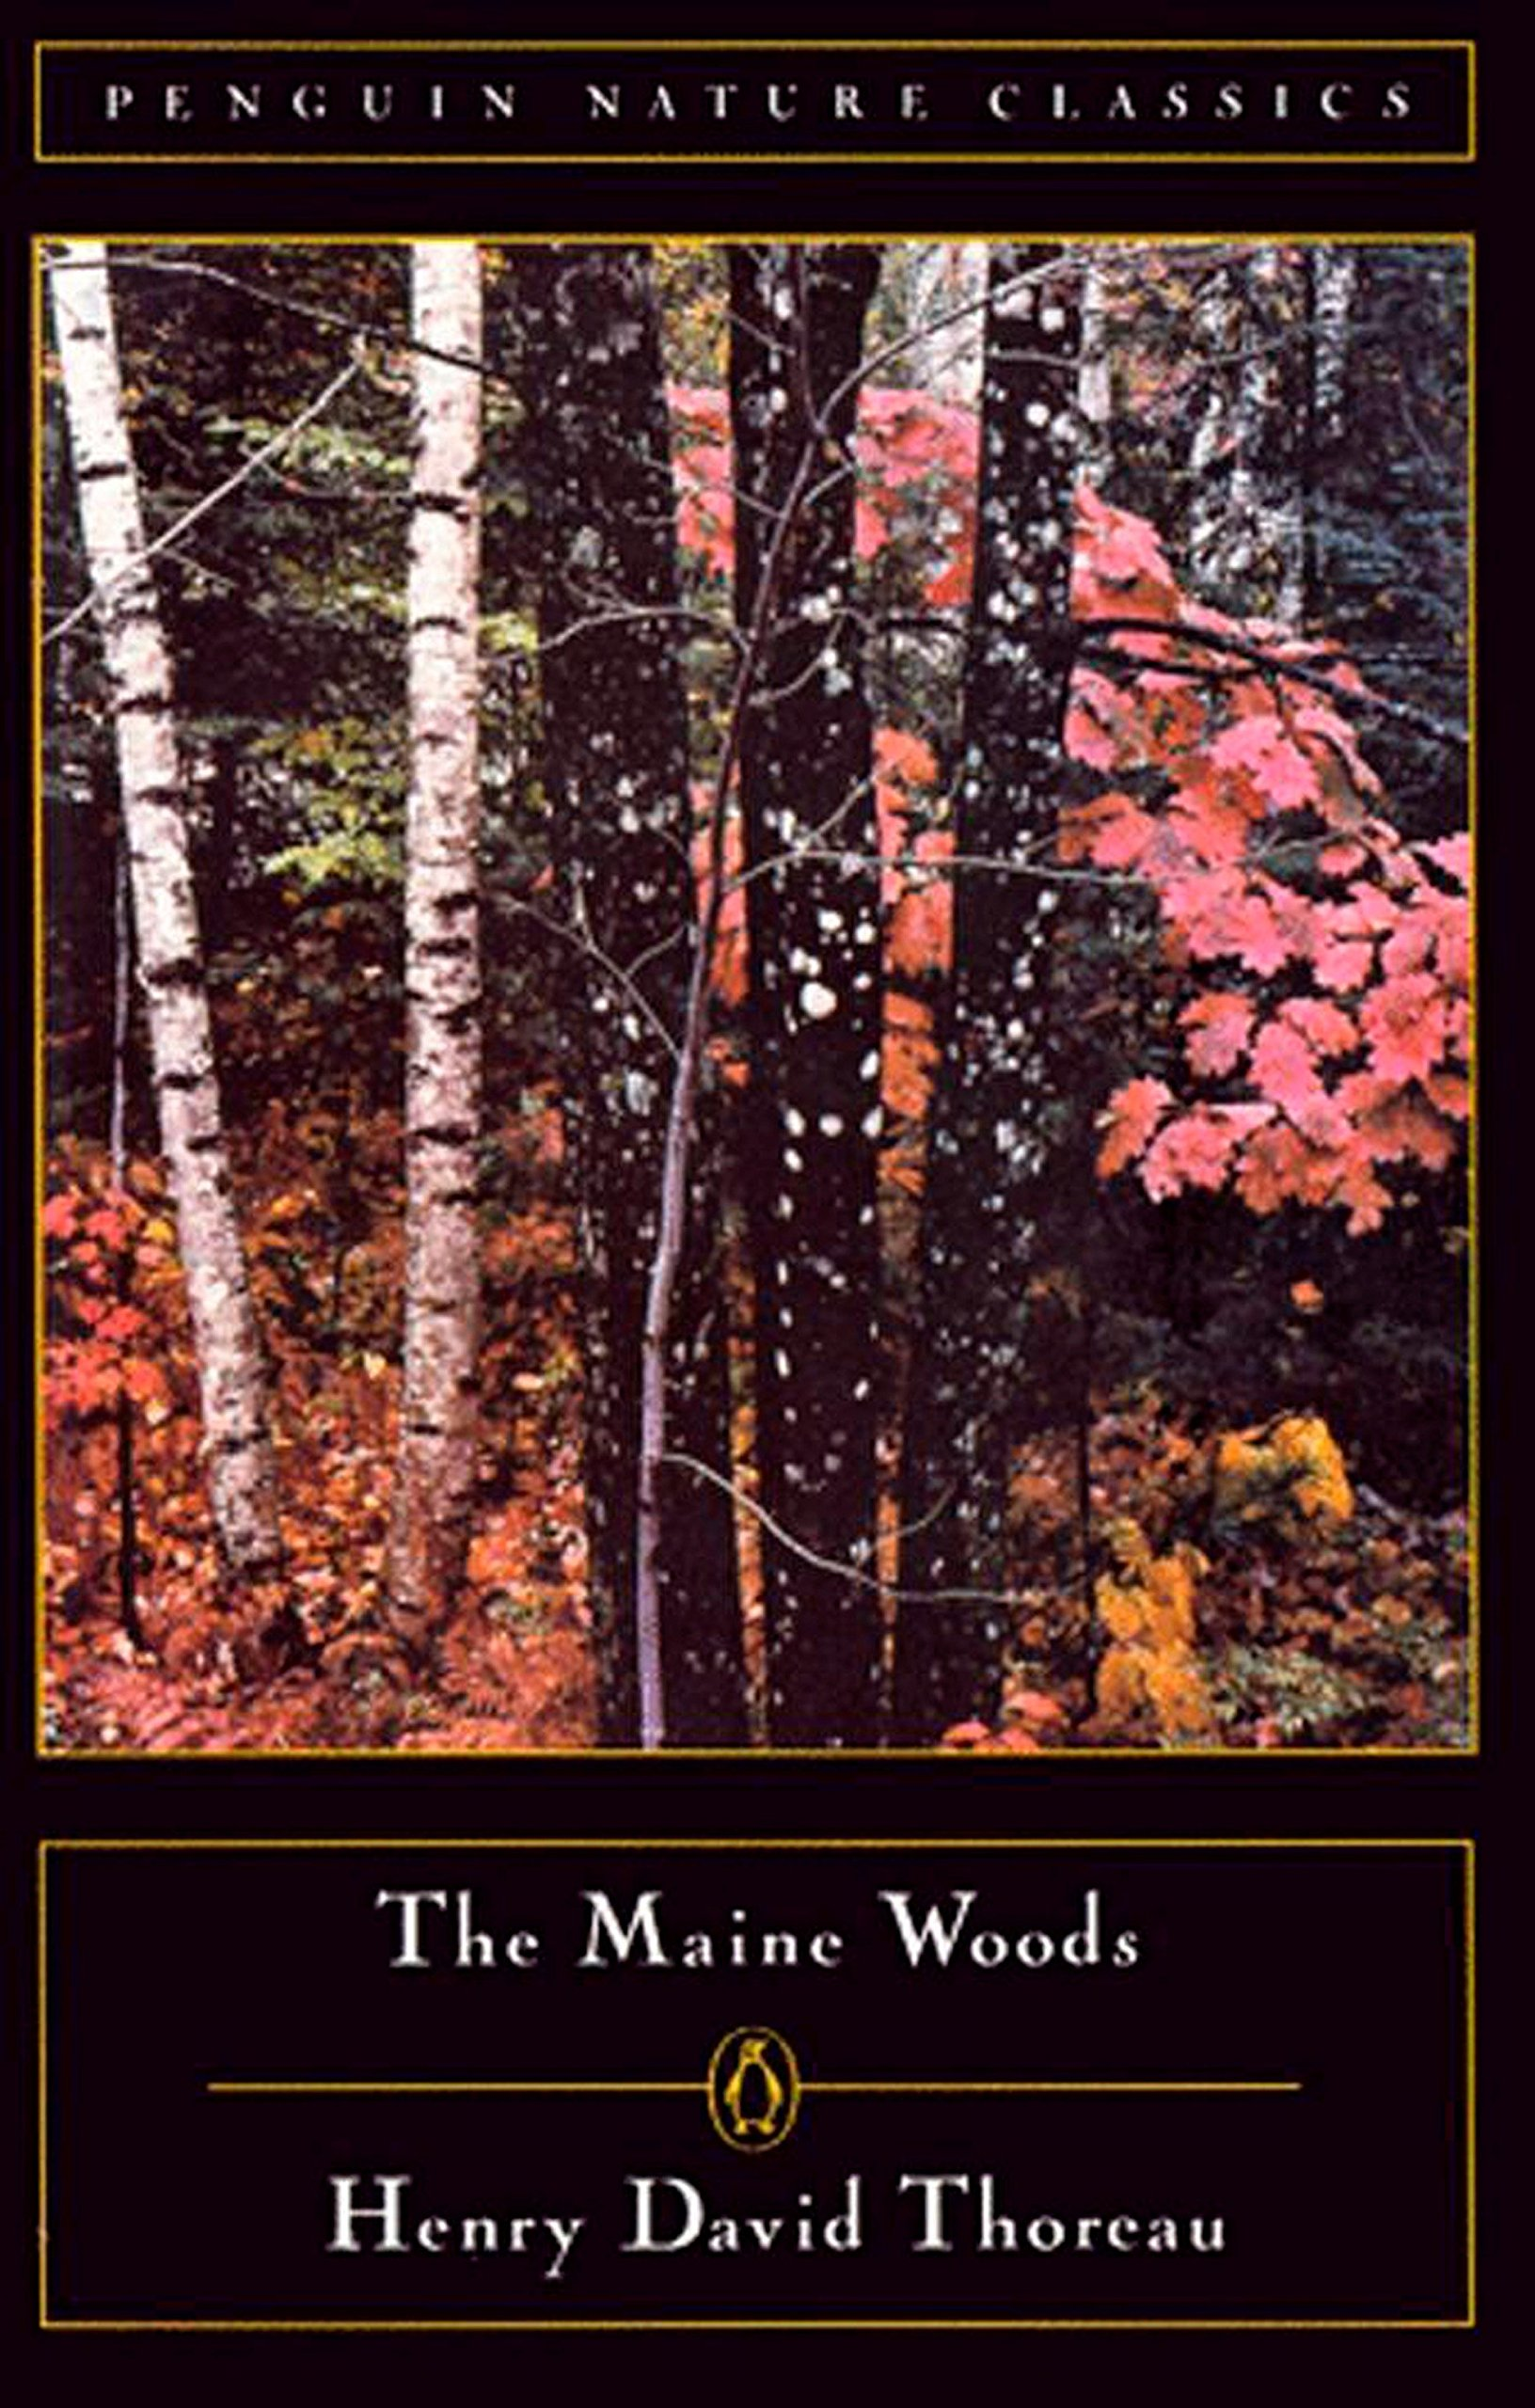 Sign up for new styles from Maine Woods